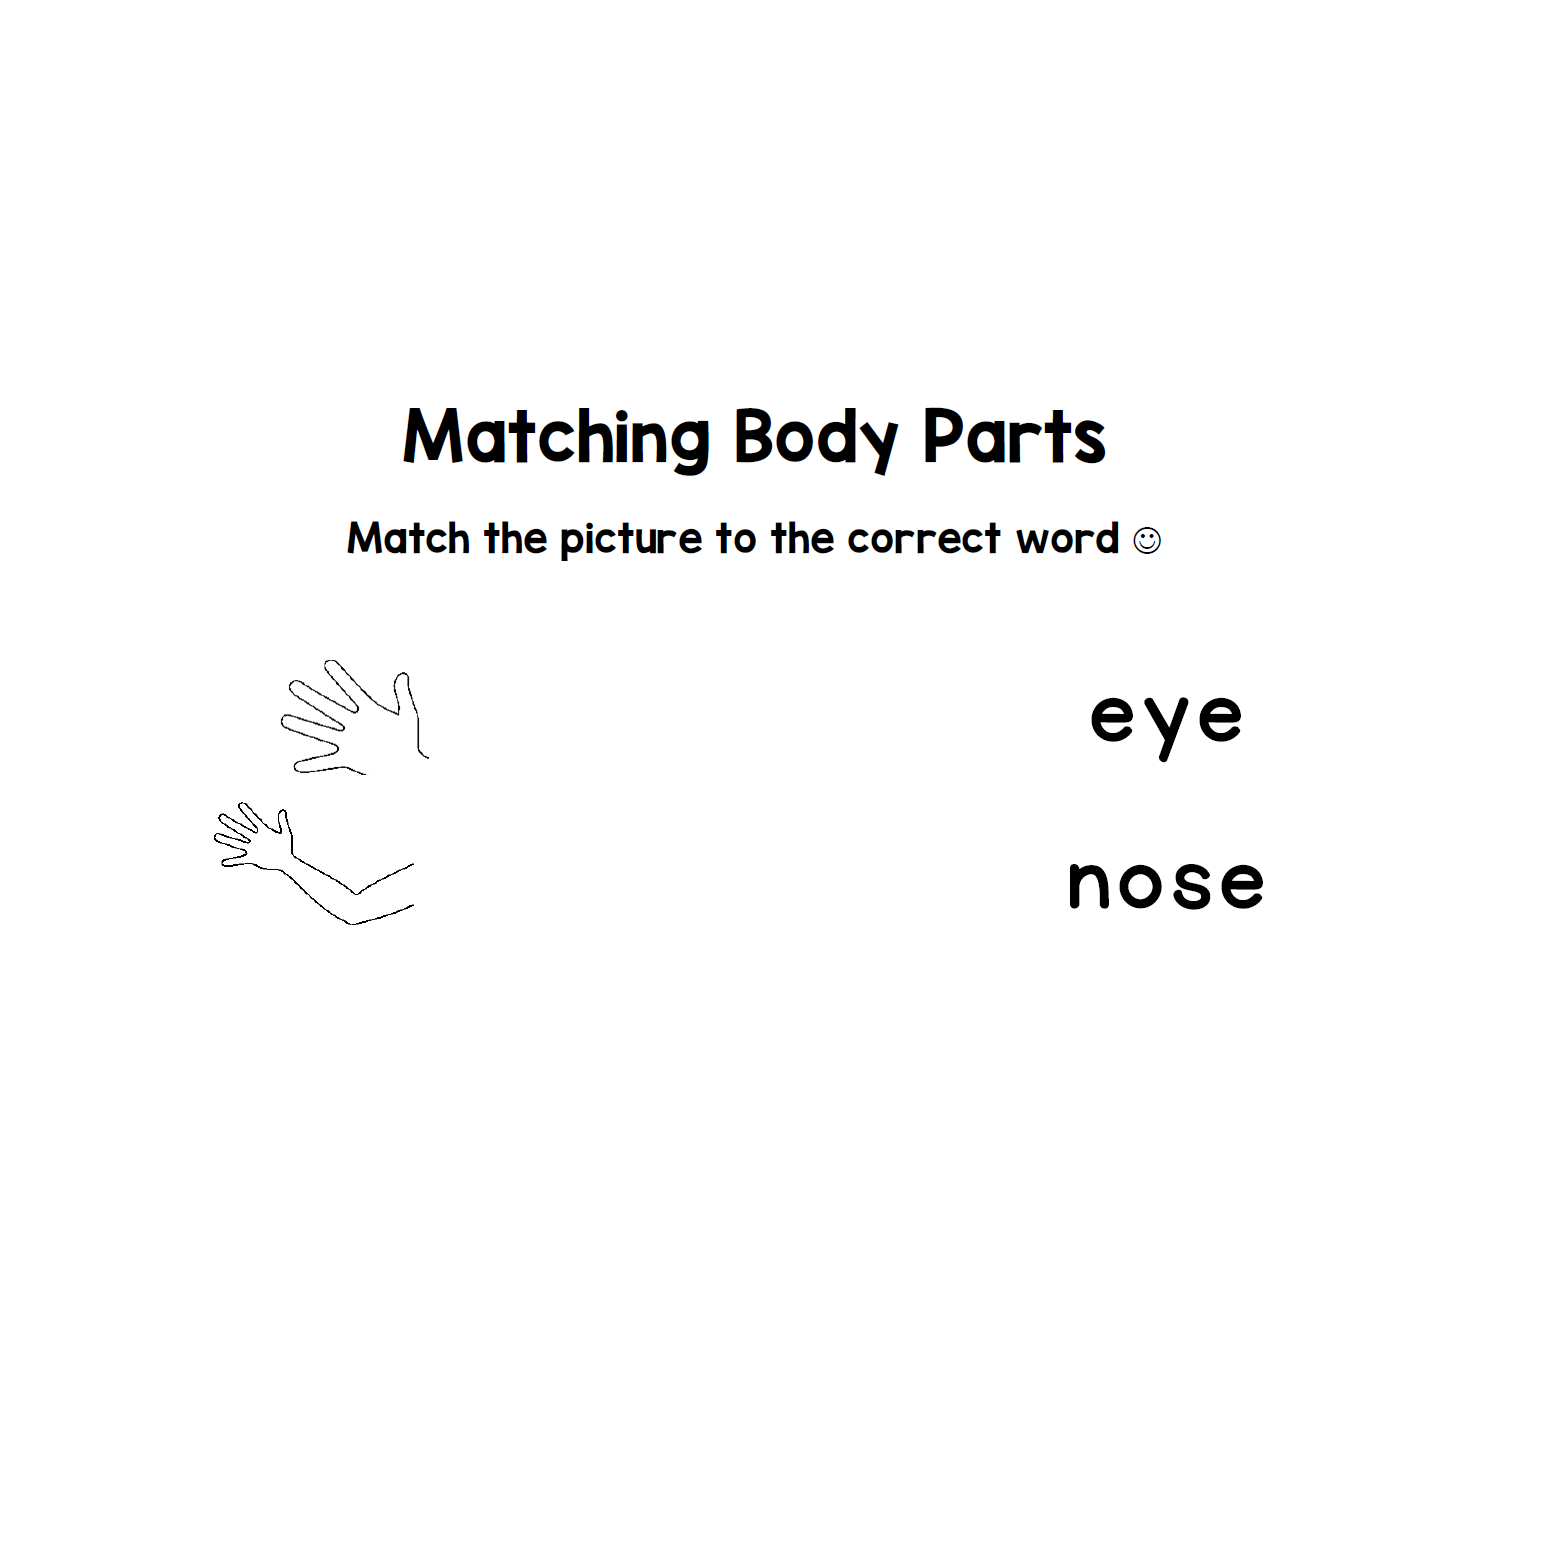 Matching Body Parts To Words